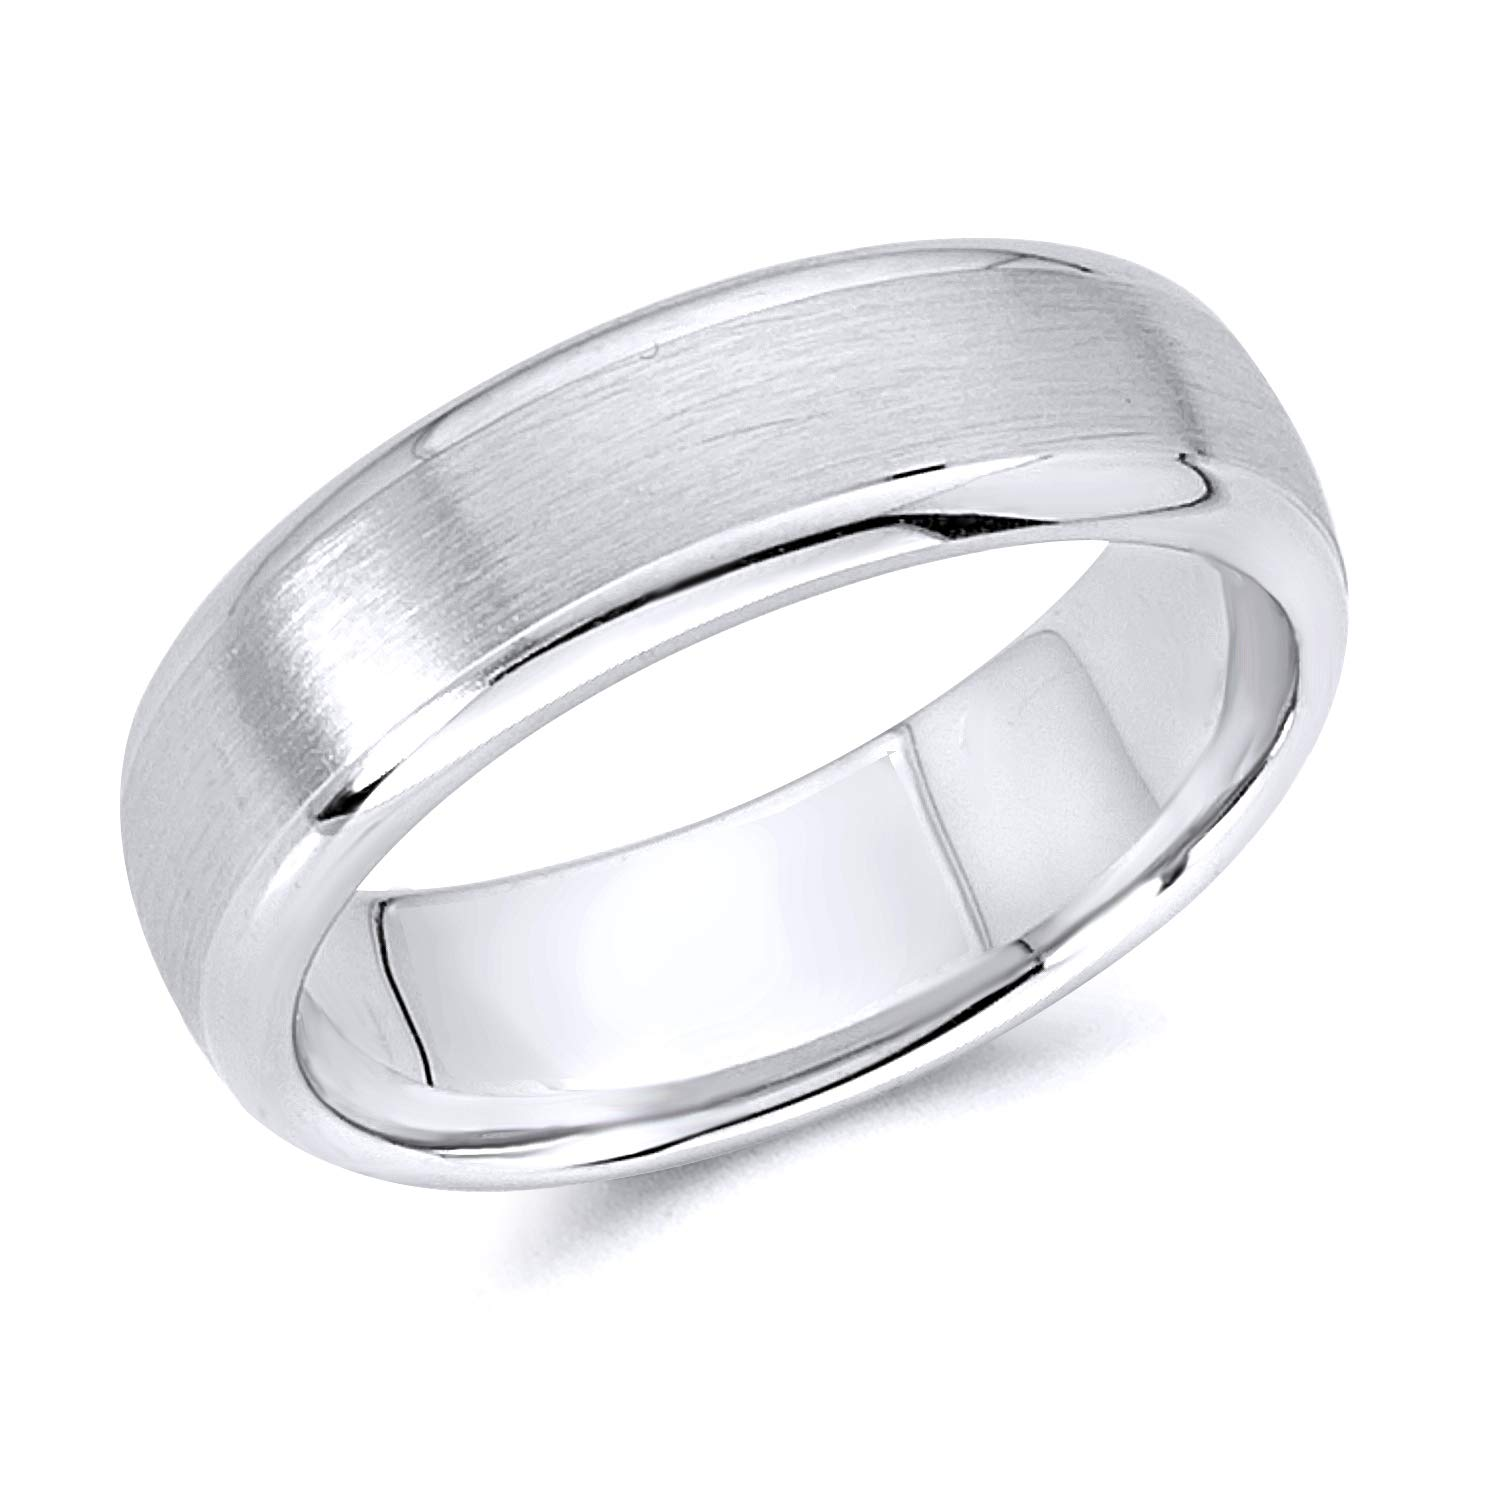 Wellingsale 14k White Gold Polished Satin 6MM Rounded Edge Comfort Fit Wedding Band Ring - Size 7 by Wellingsale